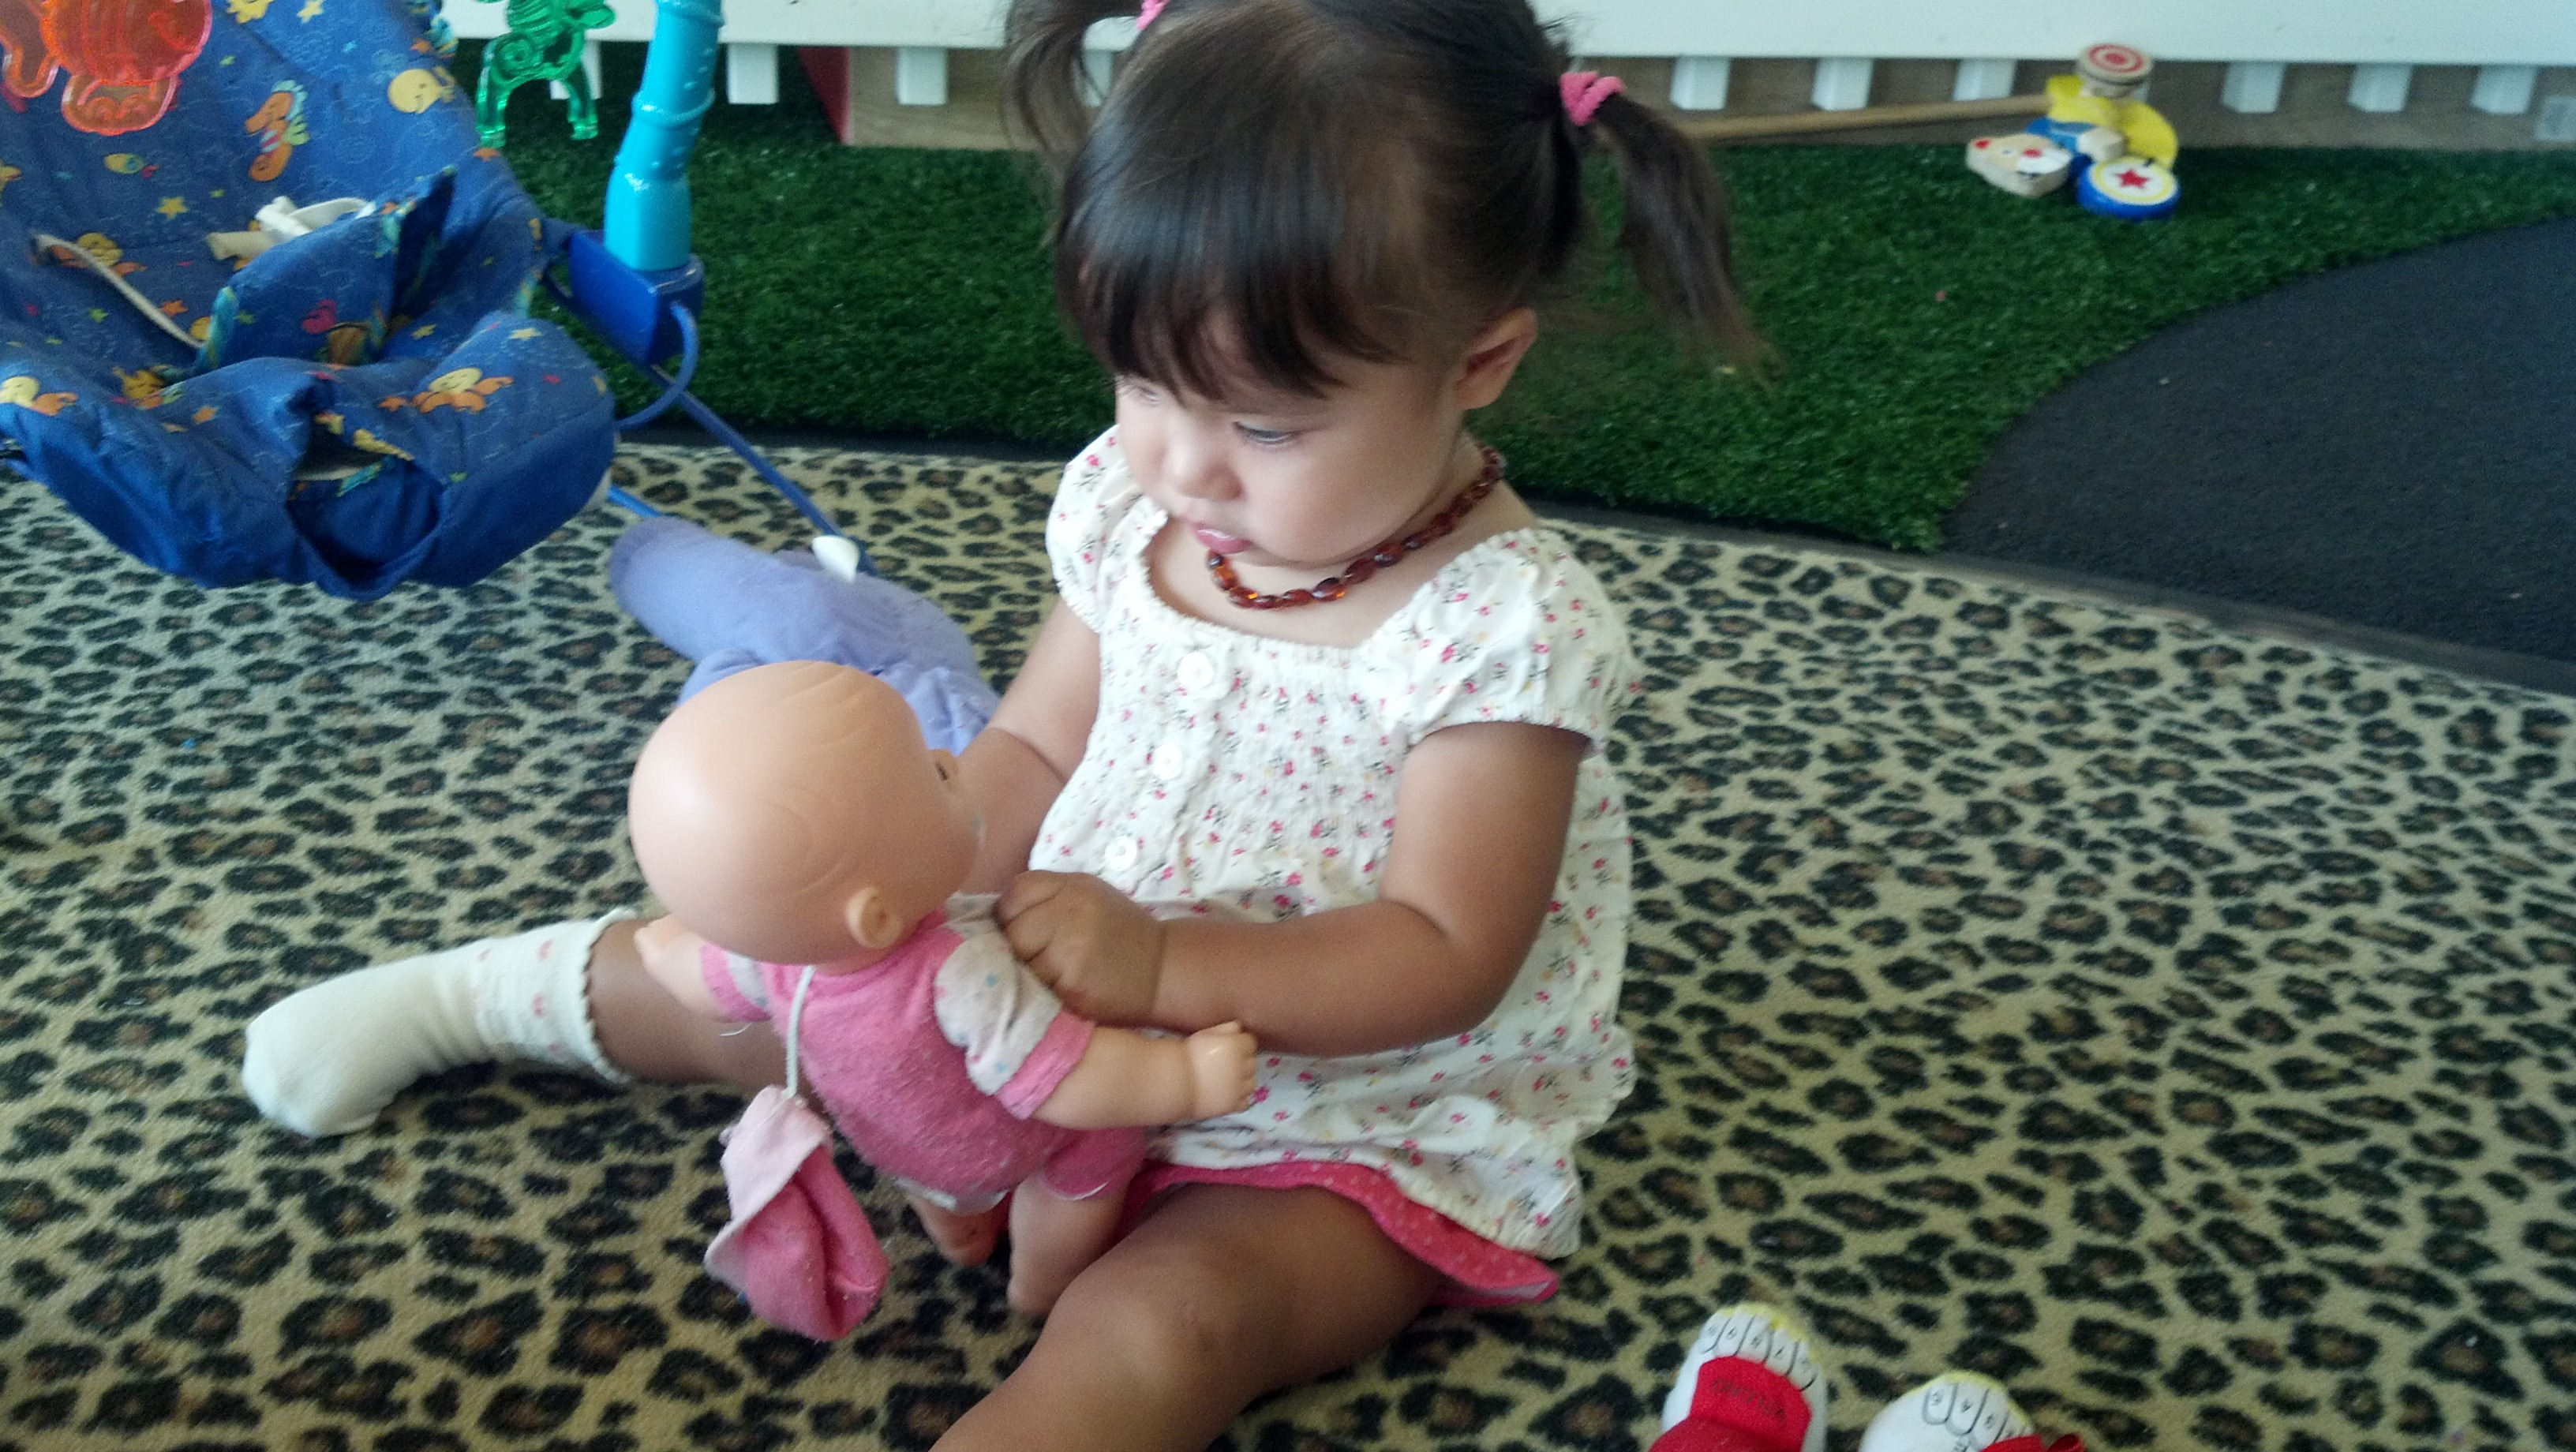 Keiko's new obsession with dolls